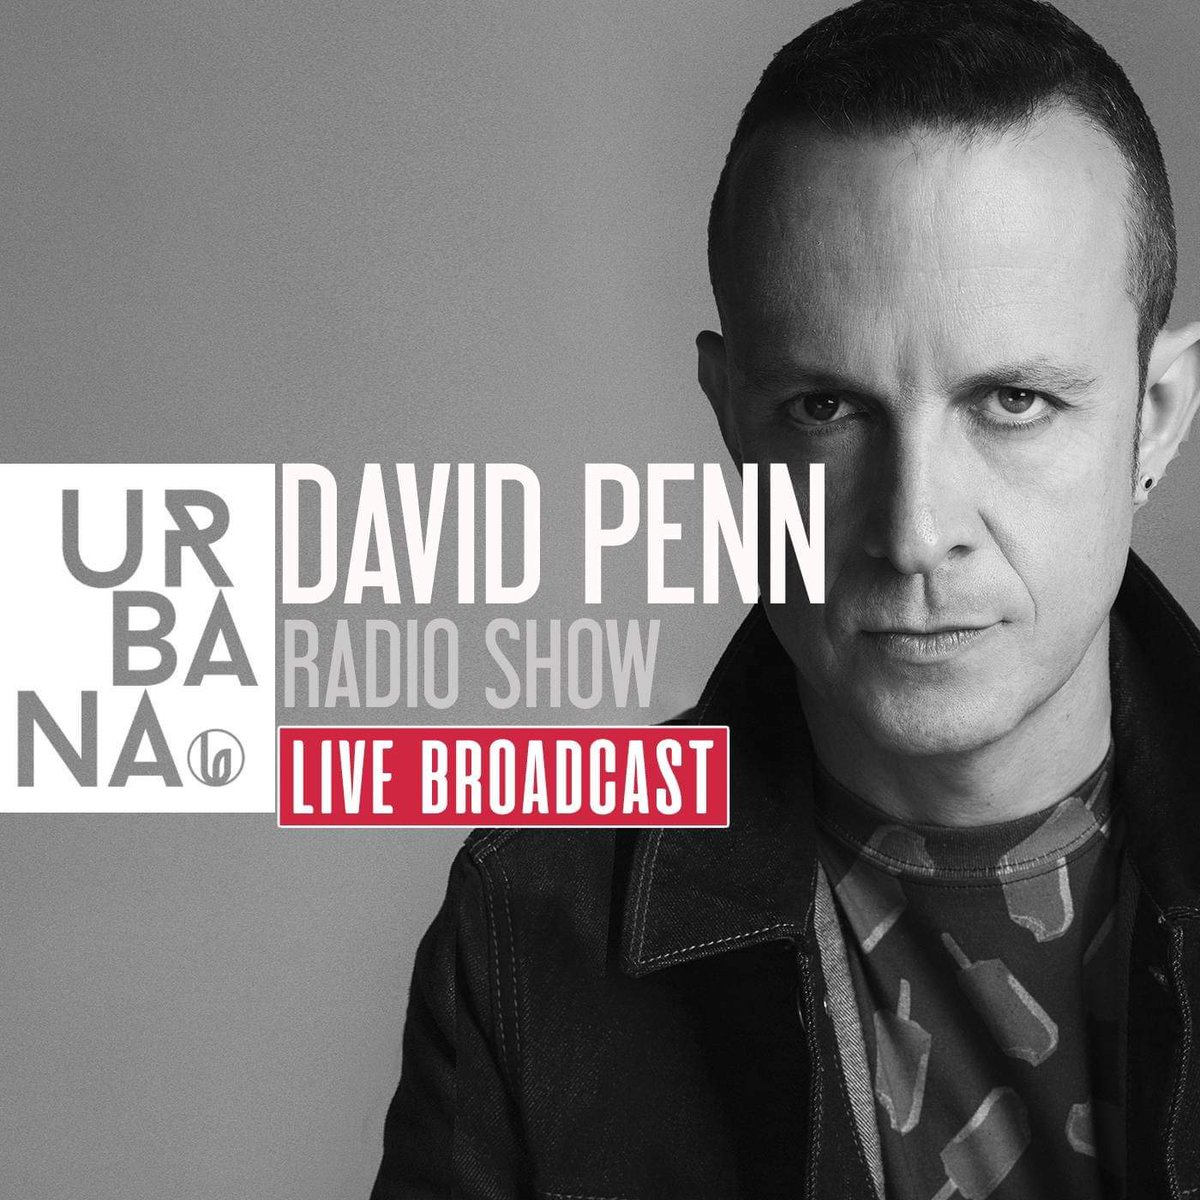 #TuneInNow Urbana Radioshow Live!! Hosted By .@DJDavidPenn Stream or Download our mobile app for free.   https:// chillloverradio.net      #UrbanaRadioshow #djdavidpenn #promodj #ChillLoverRadio  #onlineradiobox #igli__me <br>http://pic.twitter.com/PdkS27cLYN<br>http://pic.twitter.com/MKqTQjw0Qg